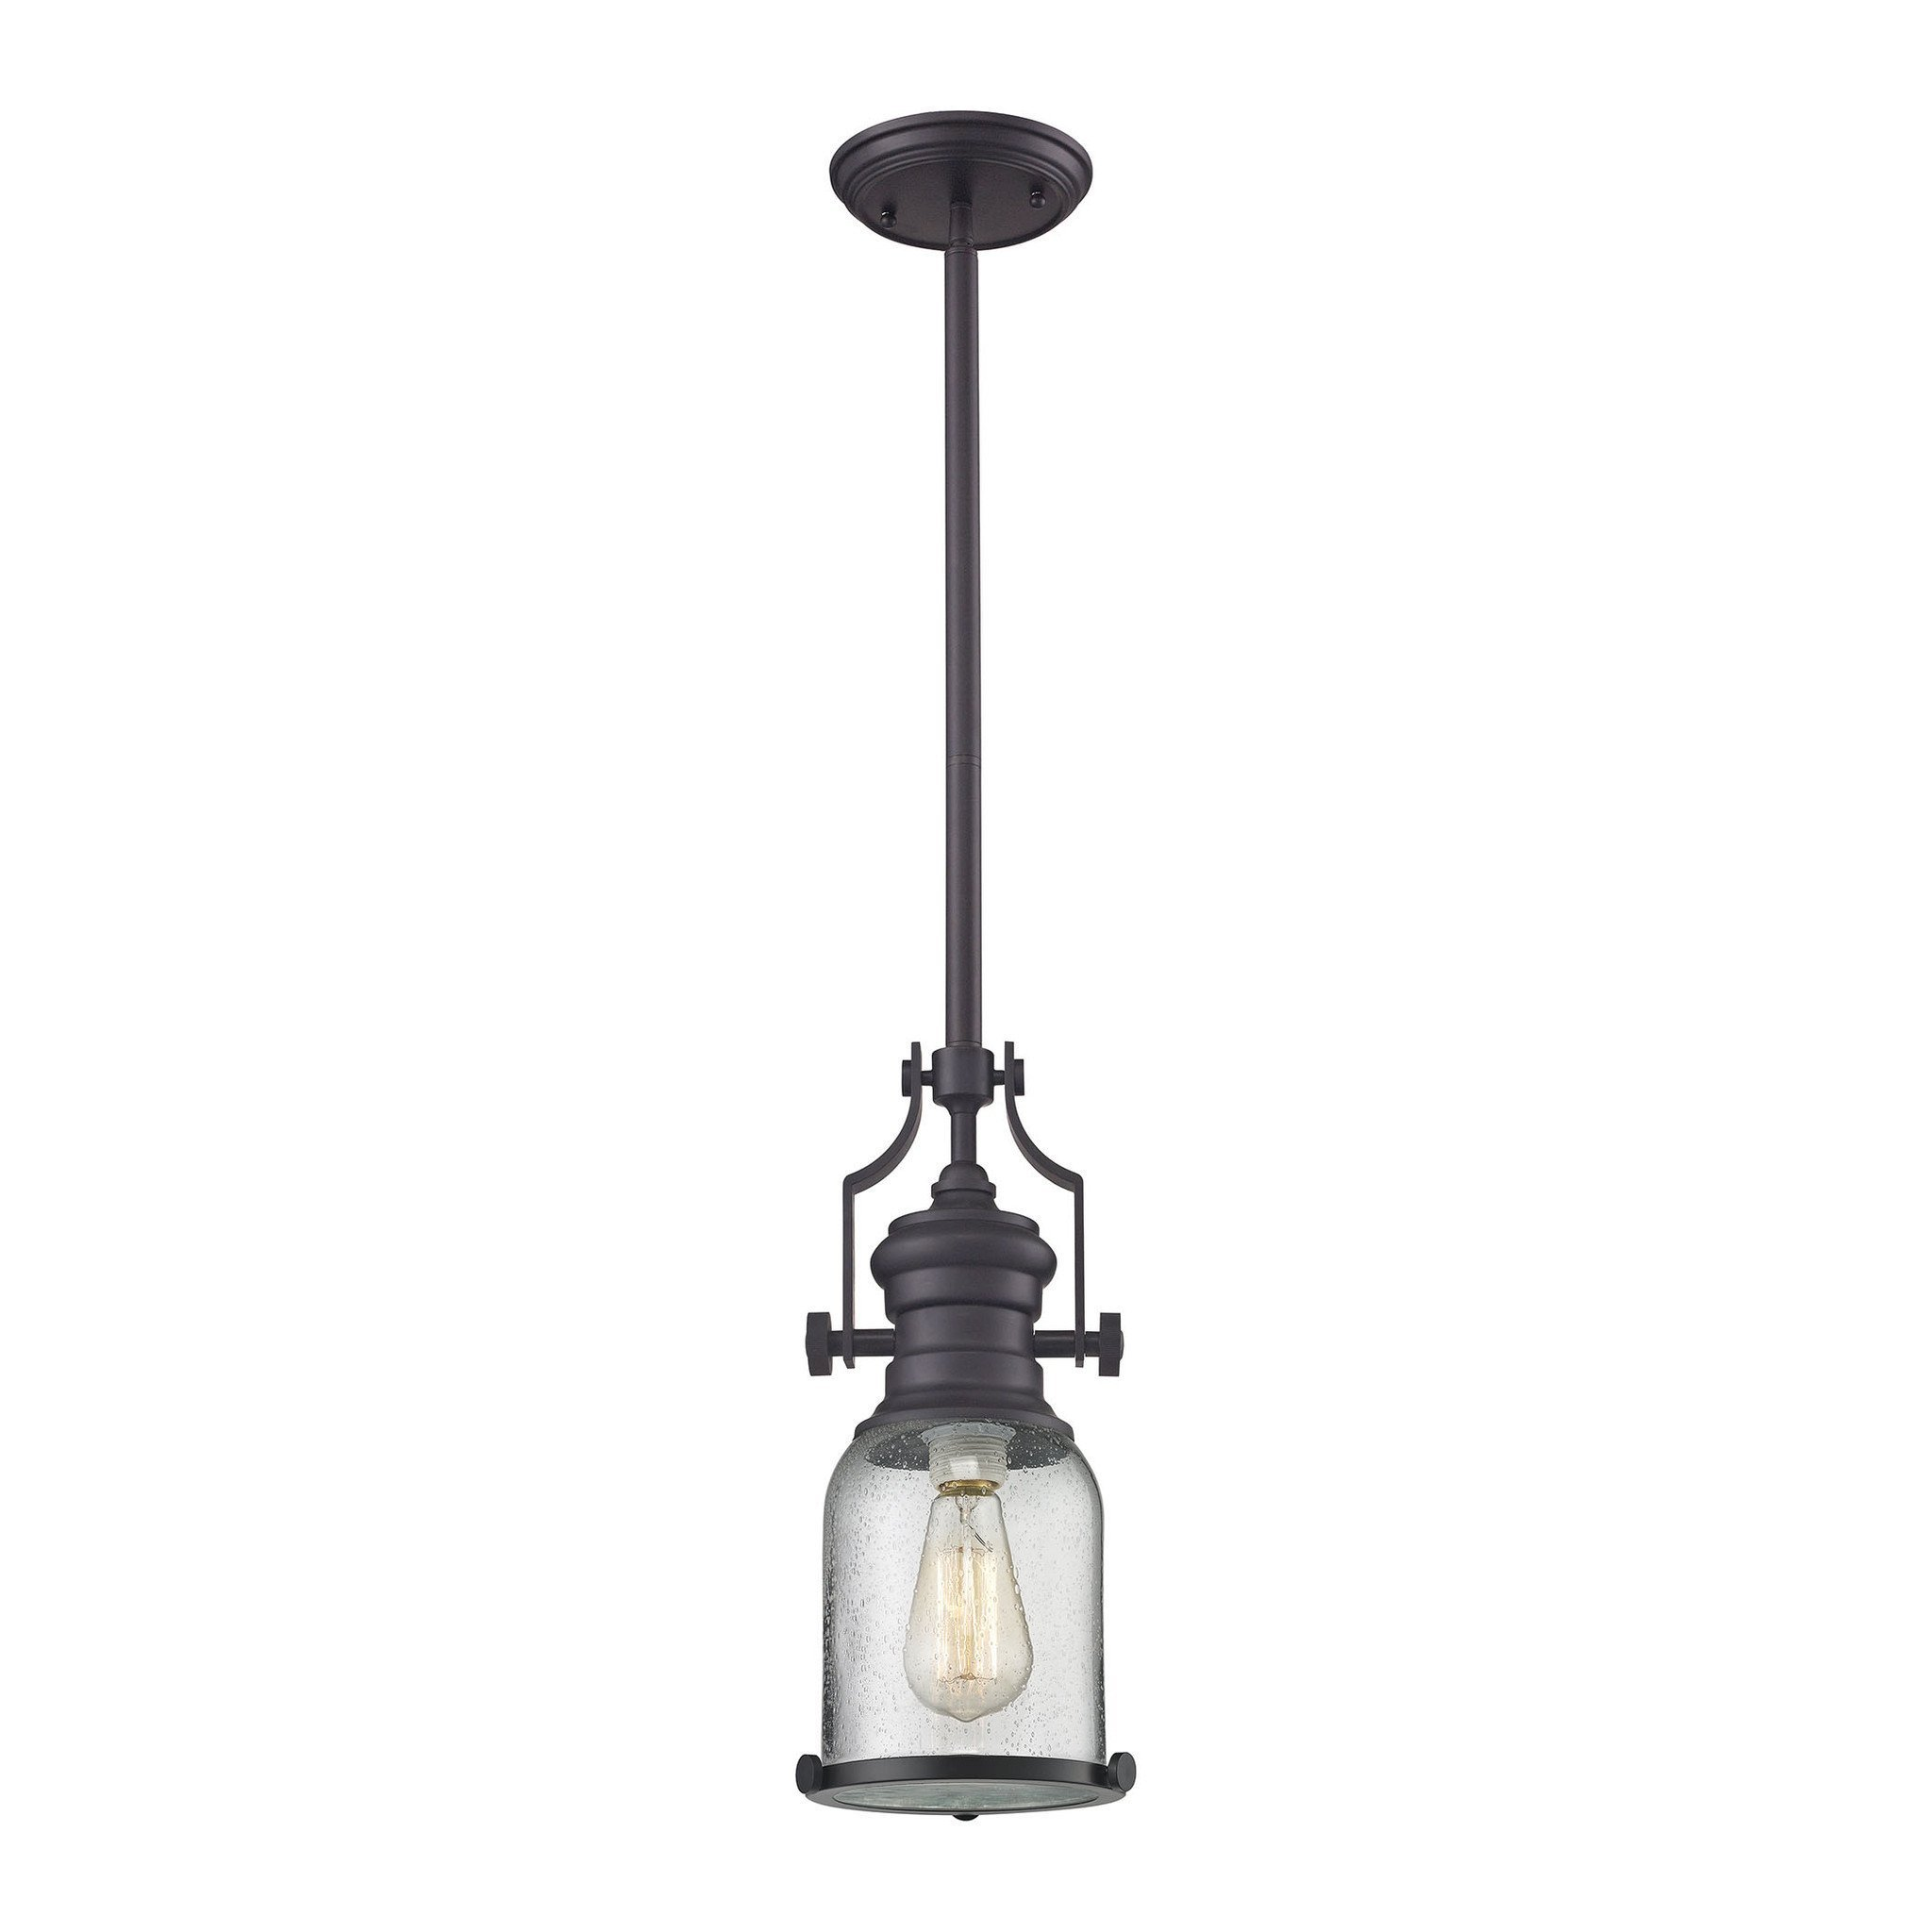 Elk Lighting 67722 1 Chadwick Collection Oil Rubbed Bronze